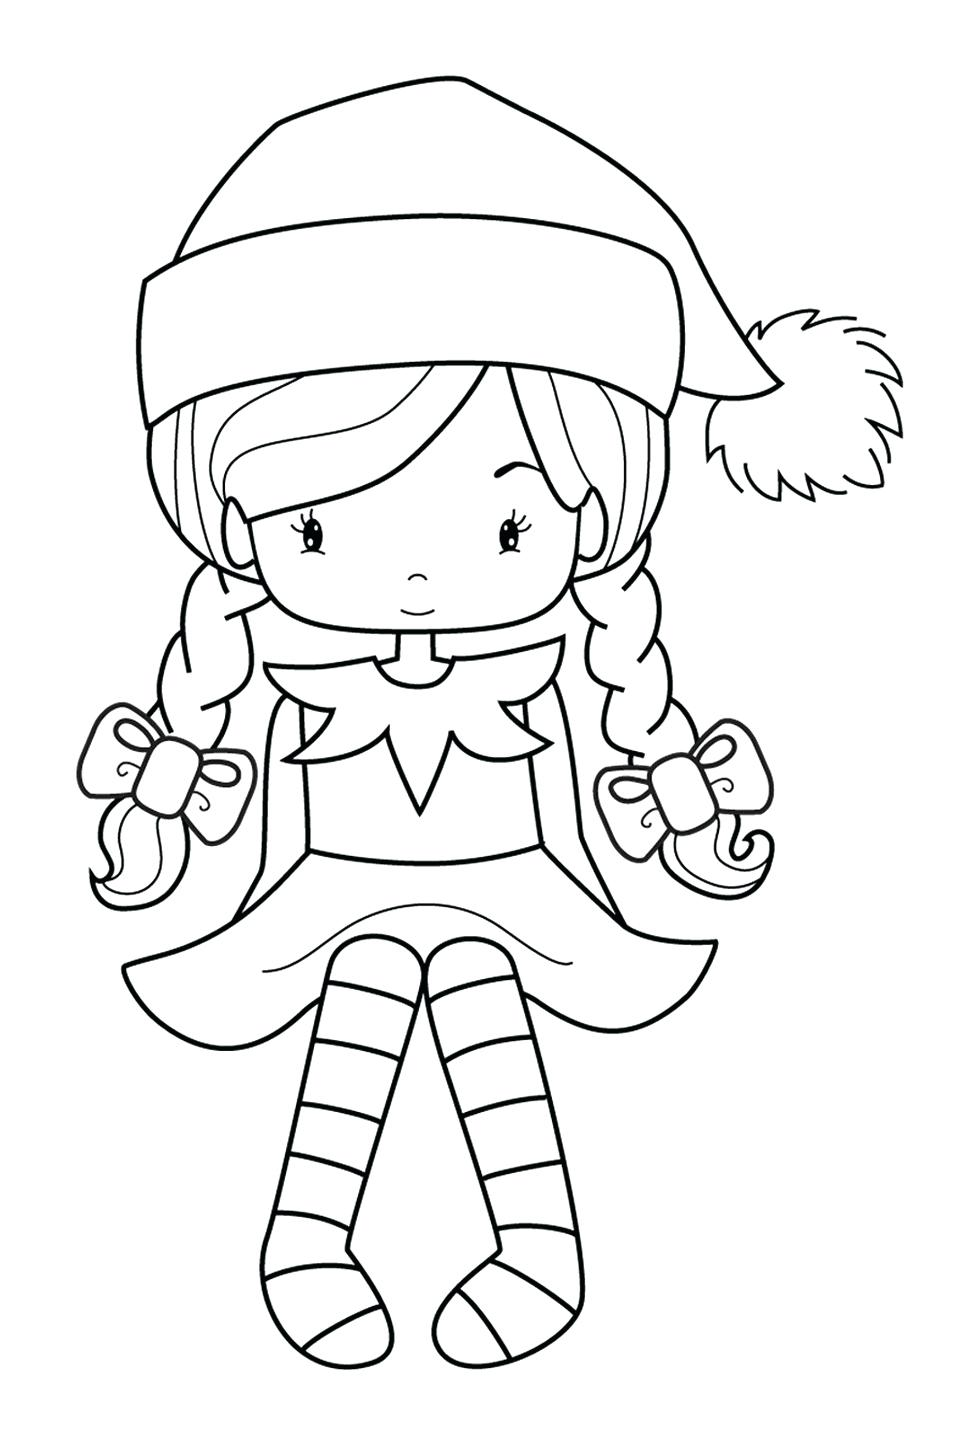 972x1434 Girl Elf On The Shelf Coloring Pages The Elf On The Shelf Coloring